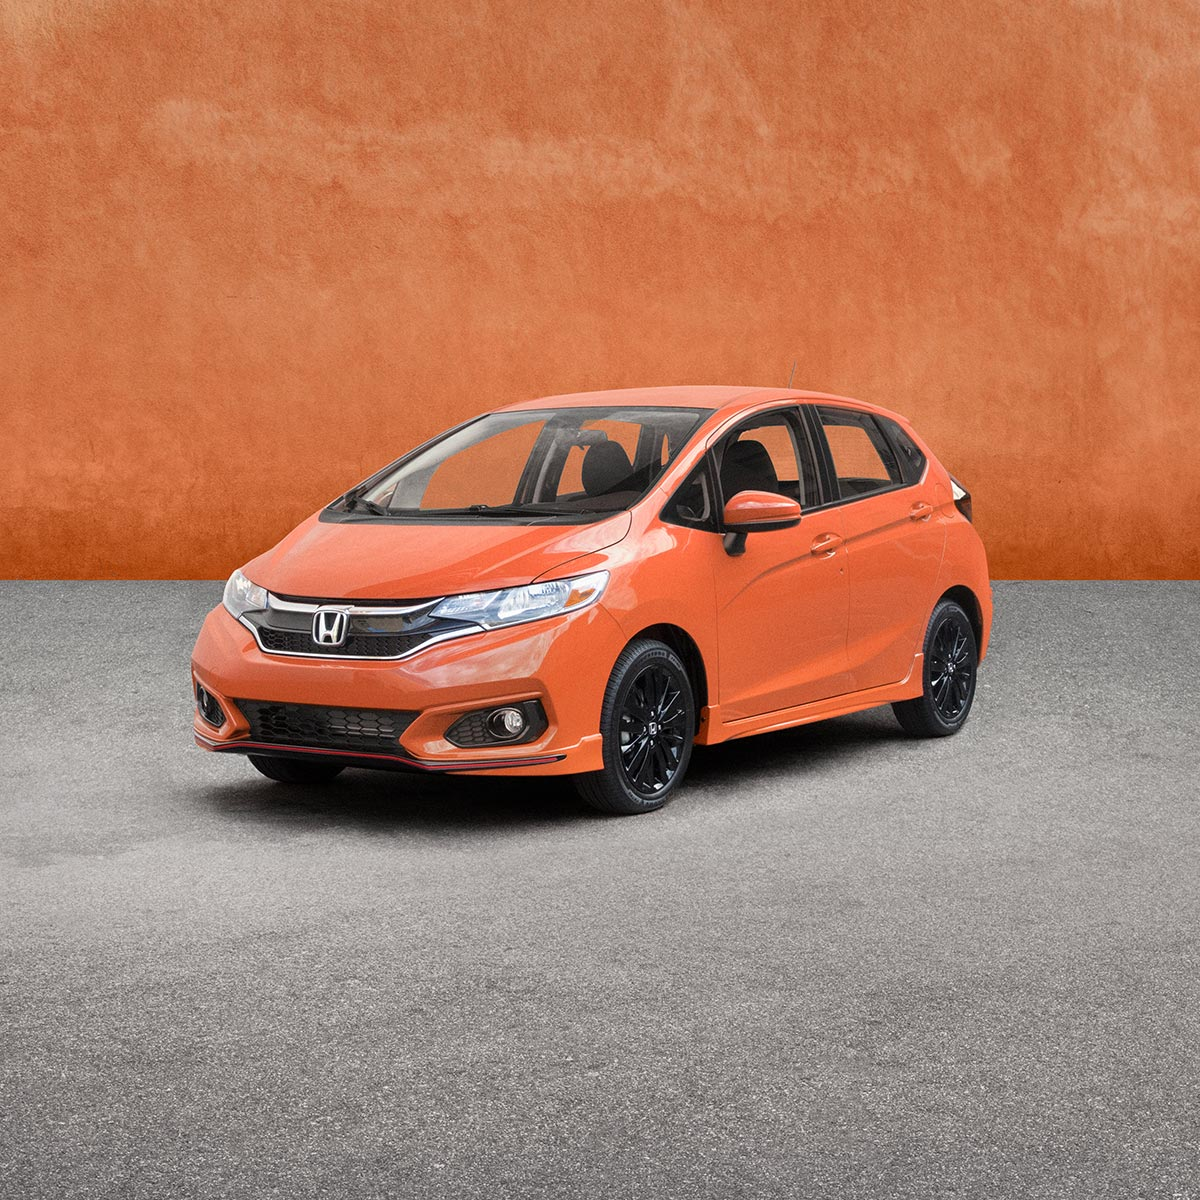 The Fit is fitting in every color. Which is your favorite? #fall #honda #hondavillage #testdrive #pumpkinspice<br>http://pic.twitter.com/FOhWxlEWuh